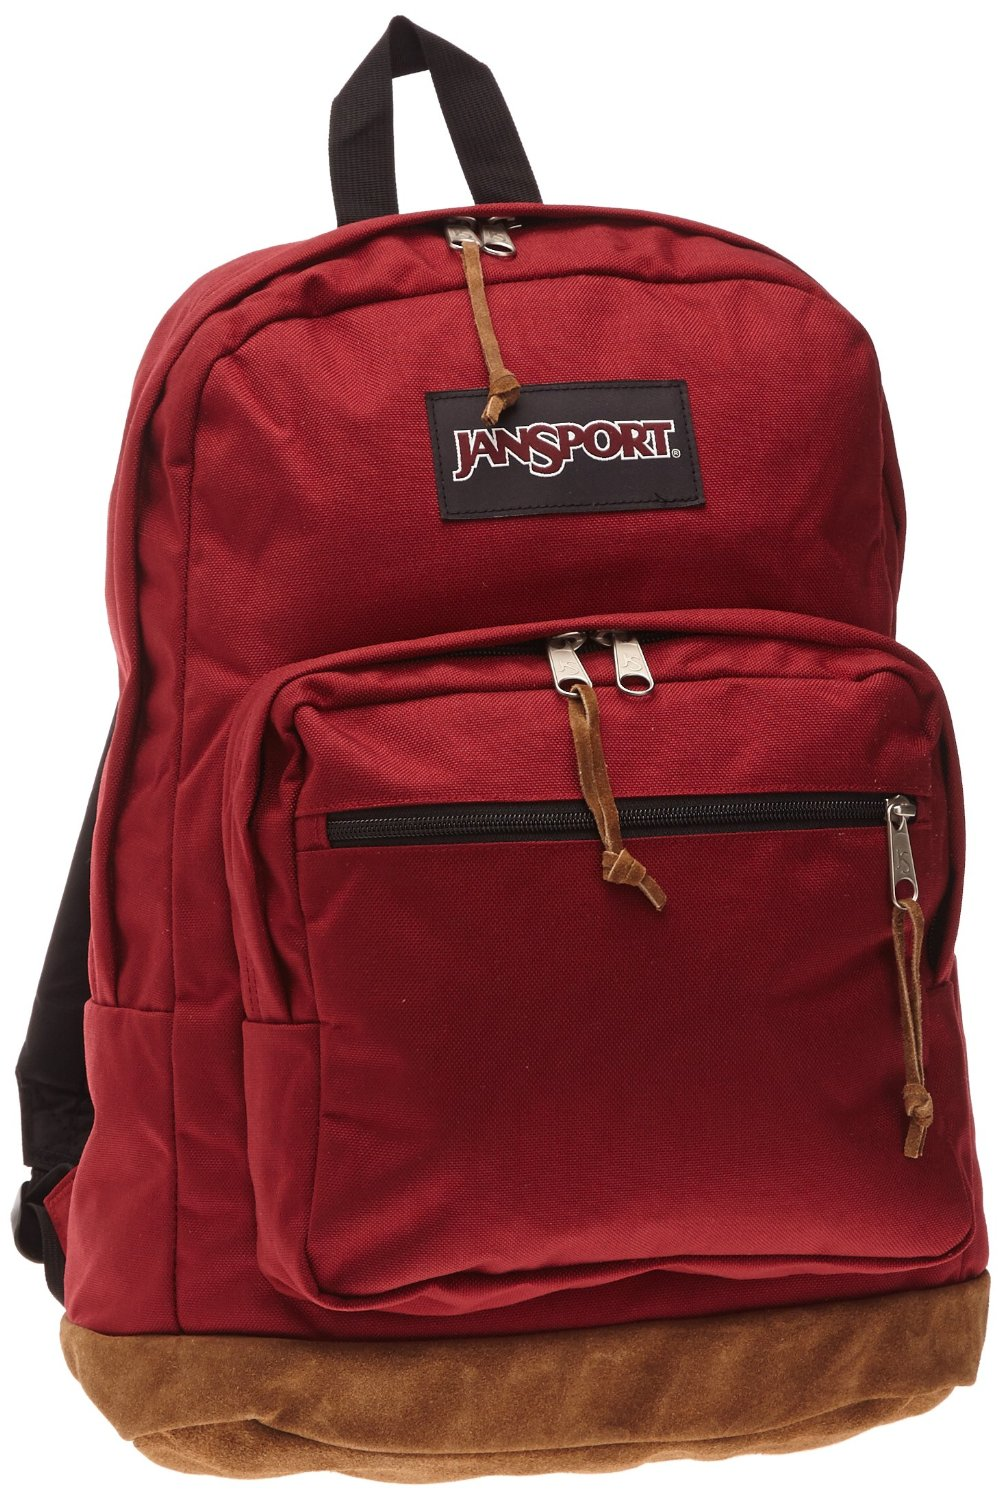 JanSport Classic SuperBreak Backpack - Viking Red - Walmart.com